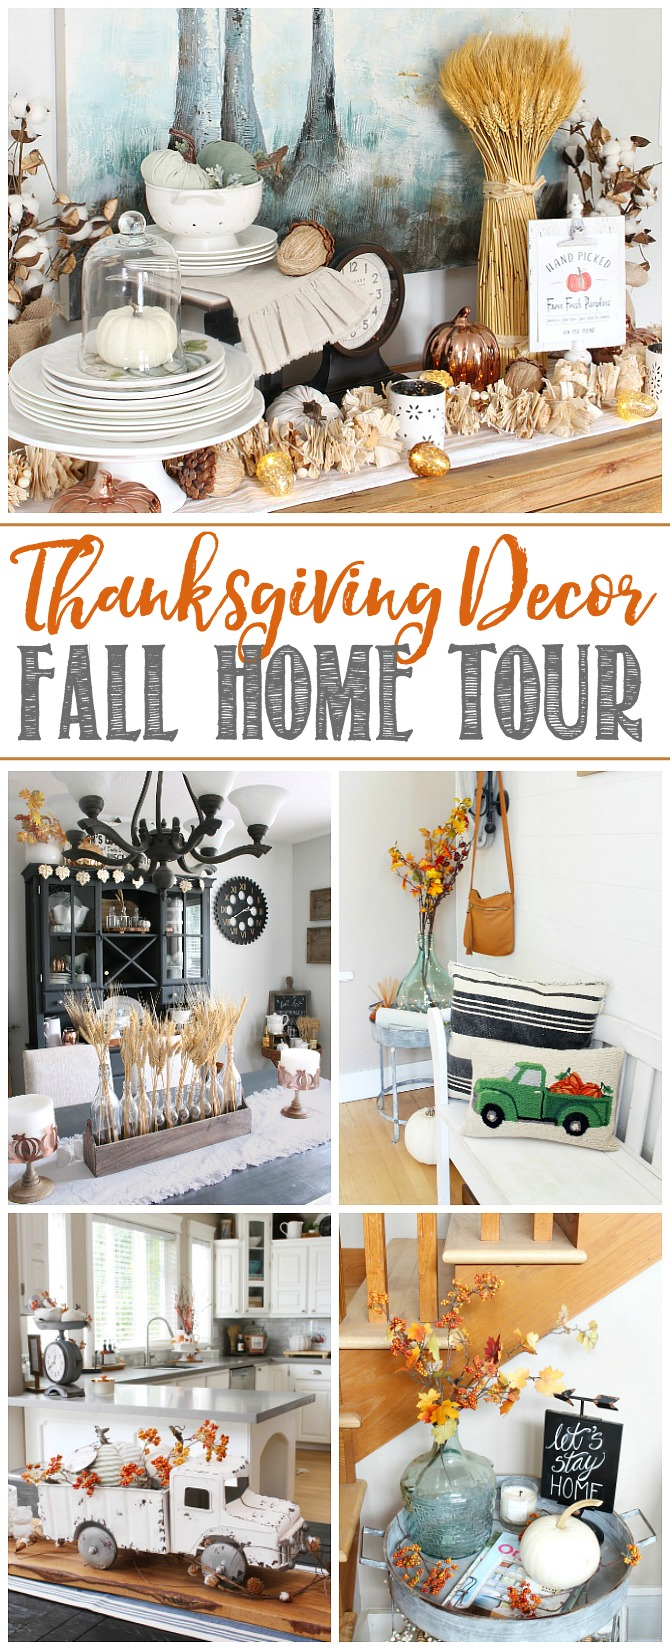 Fall home tour of a modern farmhouse style home.